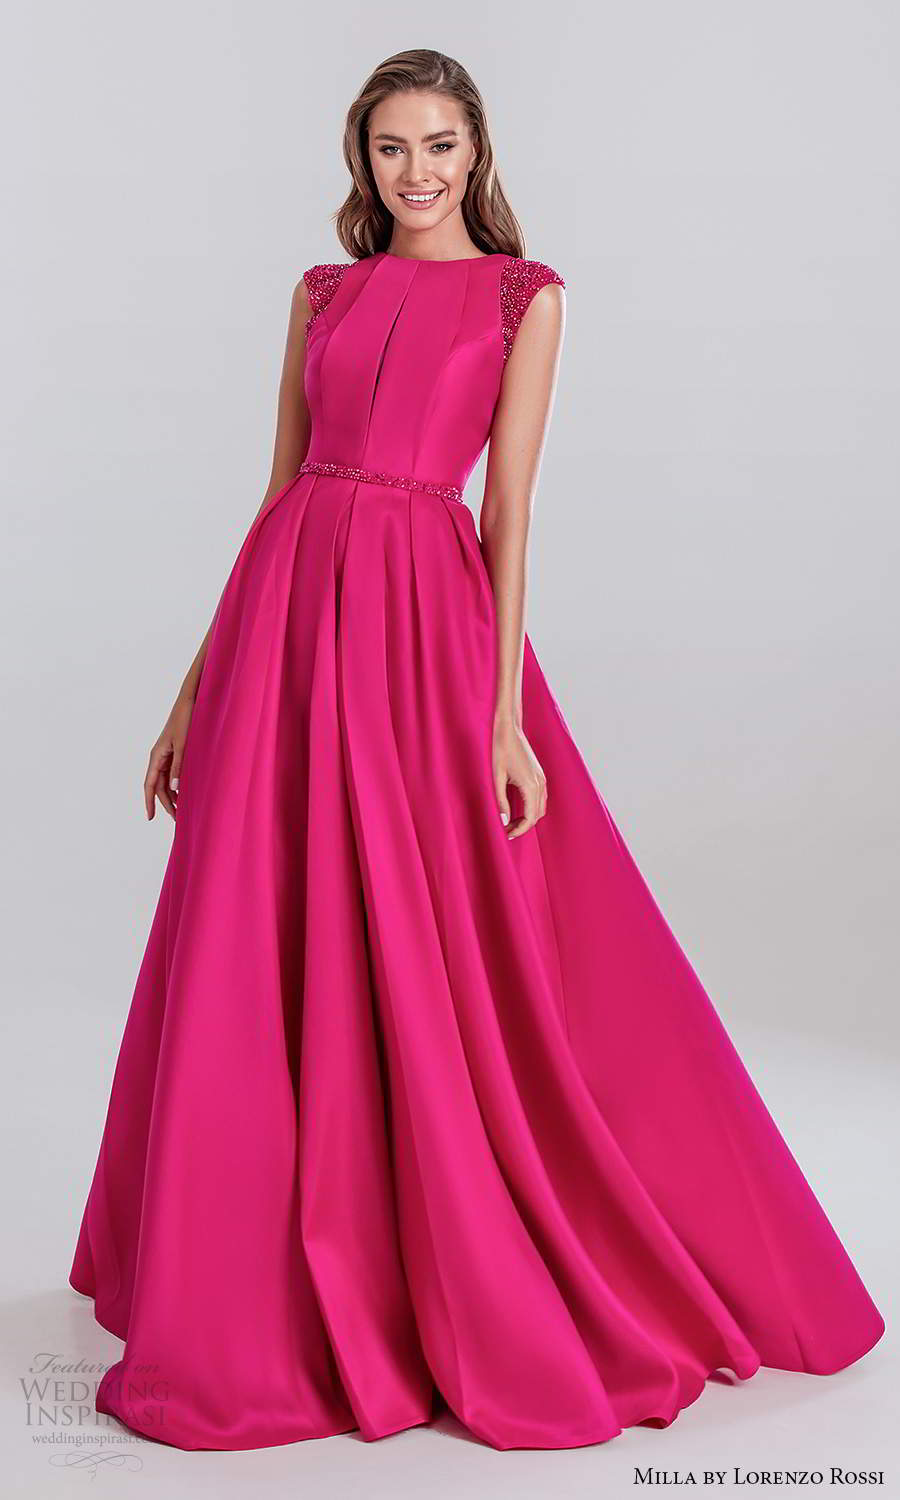 milla by lorenzo rossi 2020 rtw embellished cap sleeves bateau neckline hot pink a line ball gown evening dress (26) mv